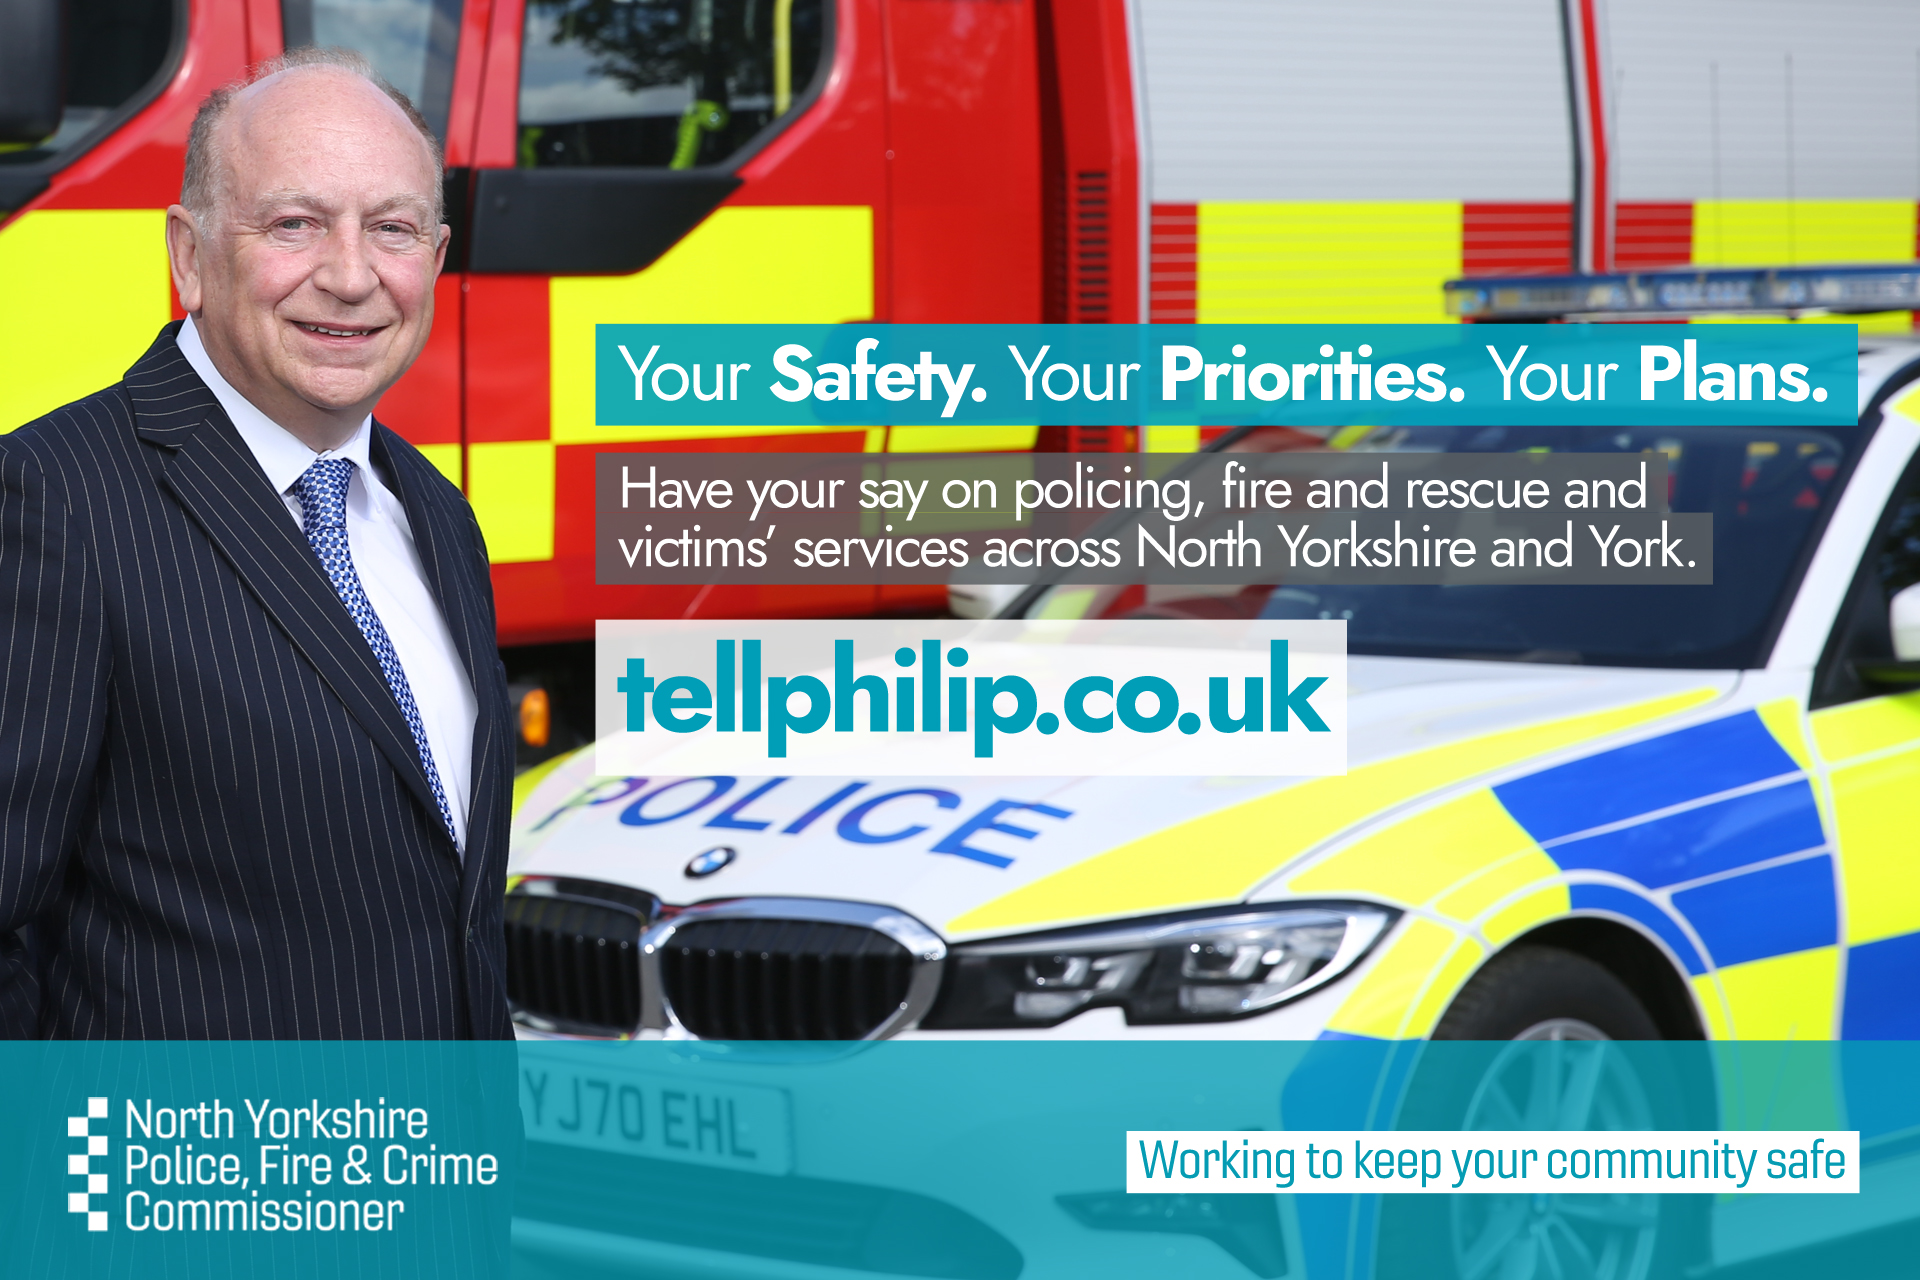 Police Fire and Crime consultation